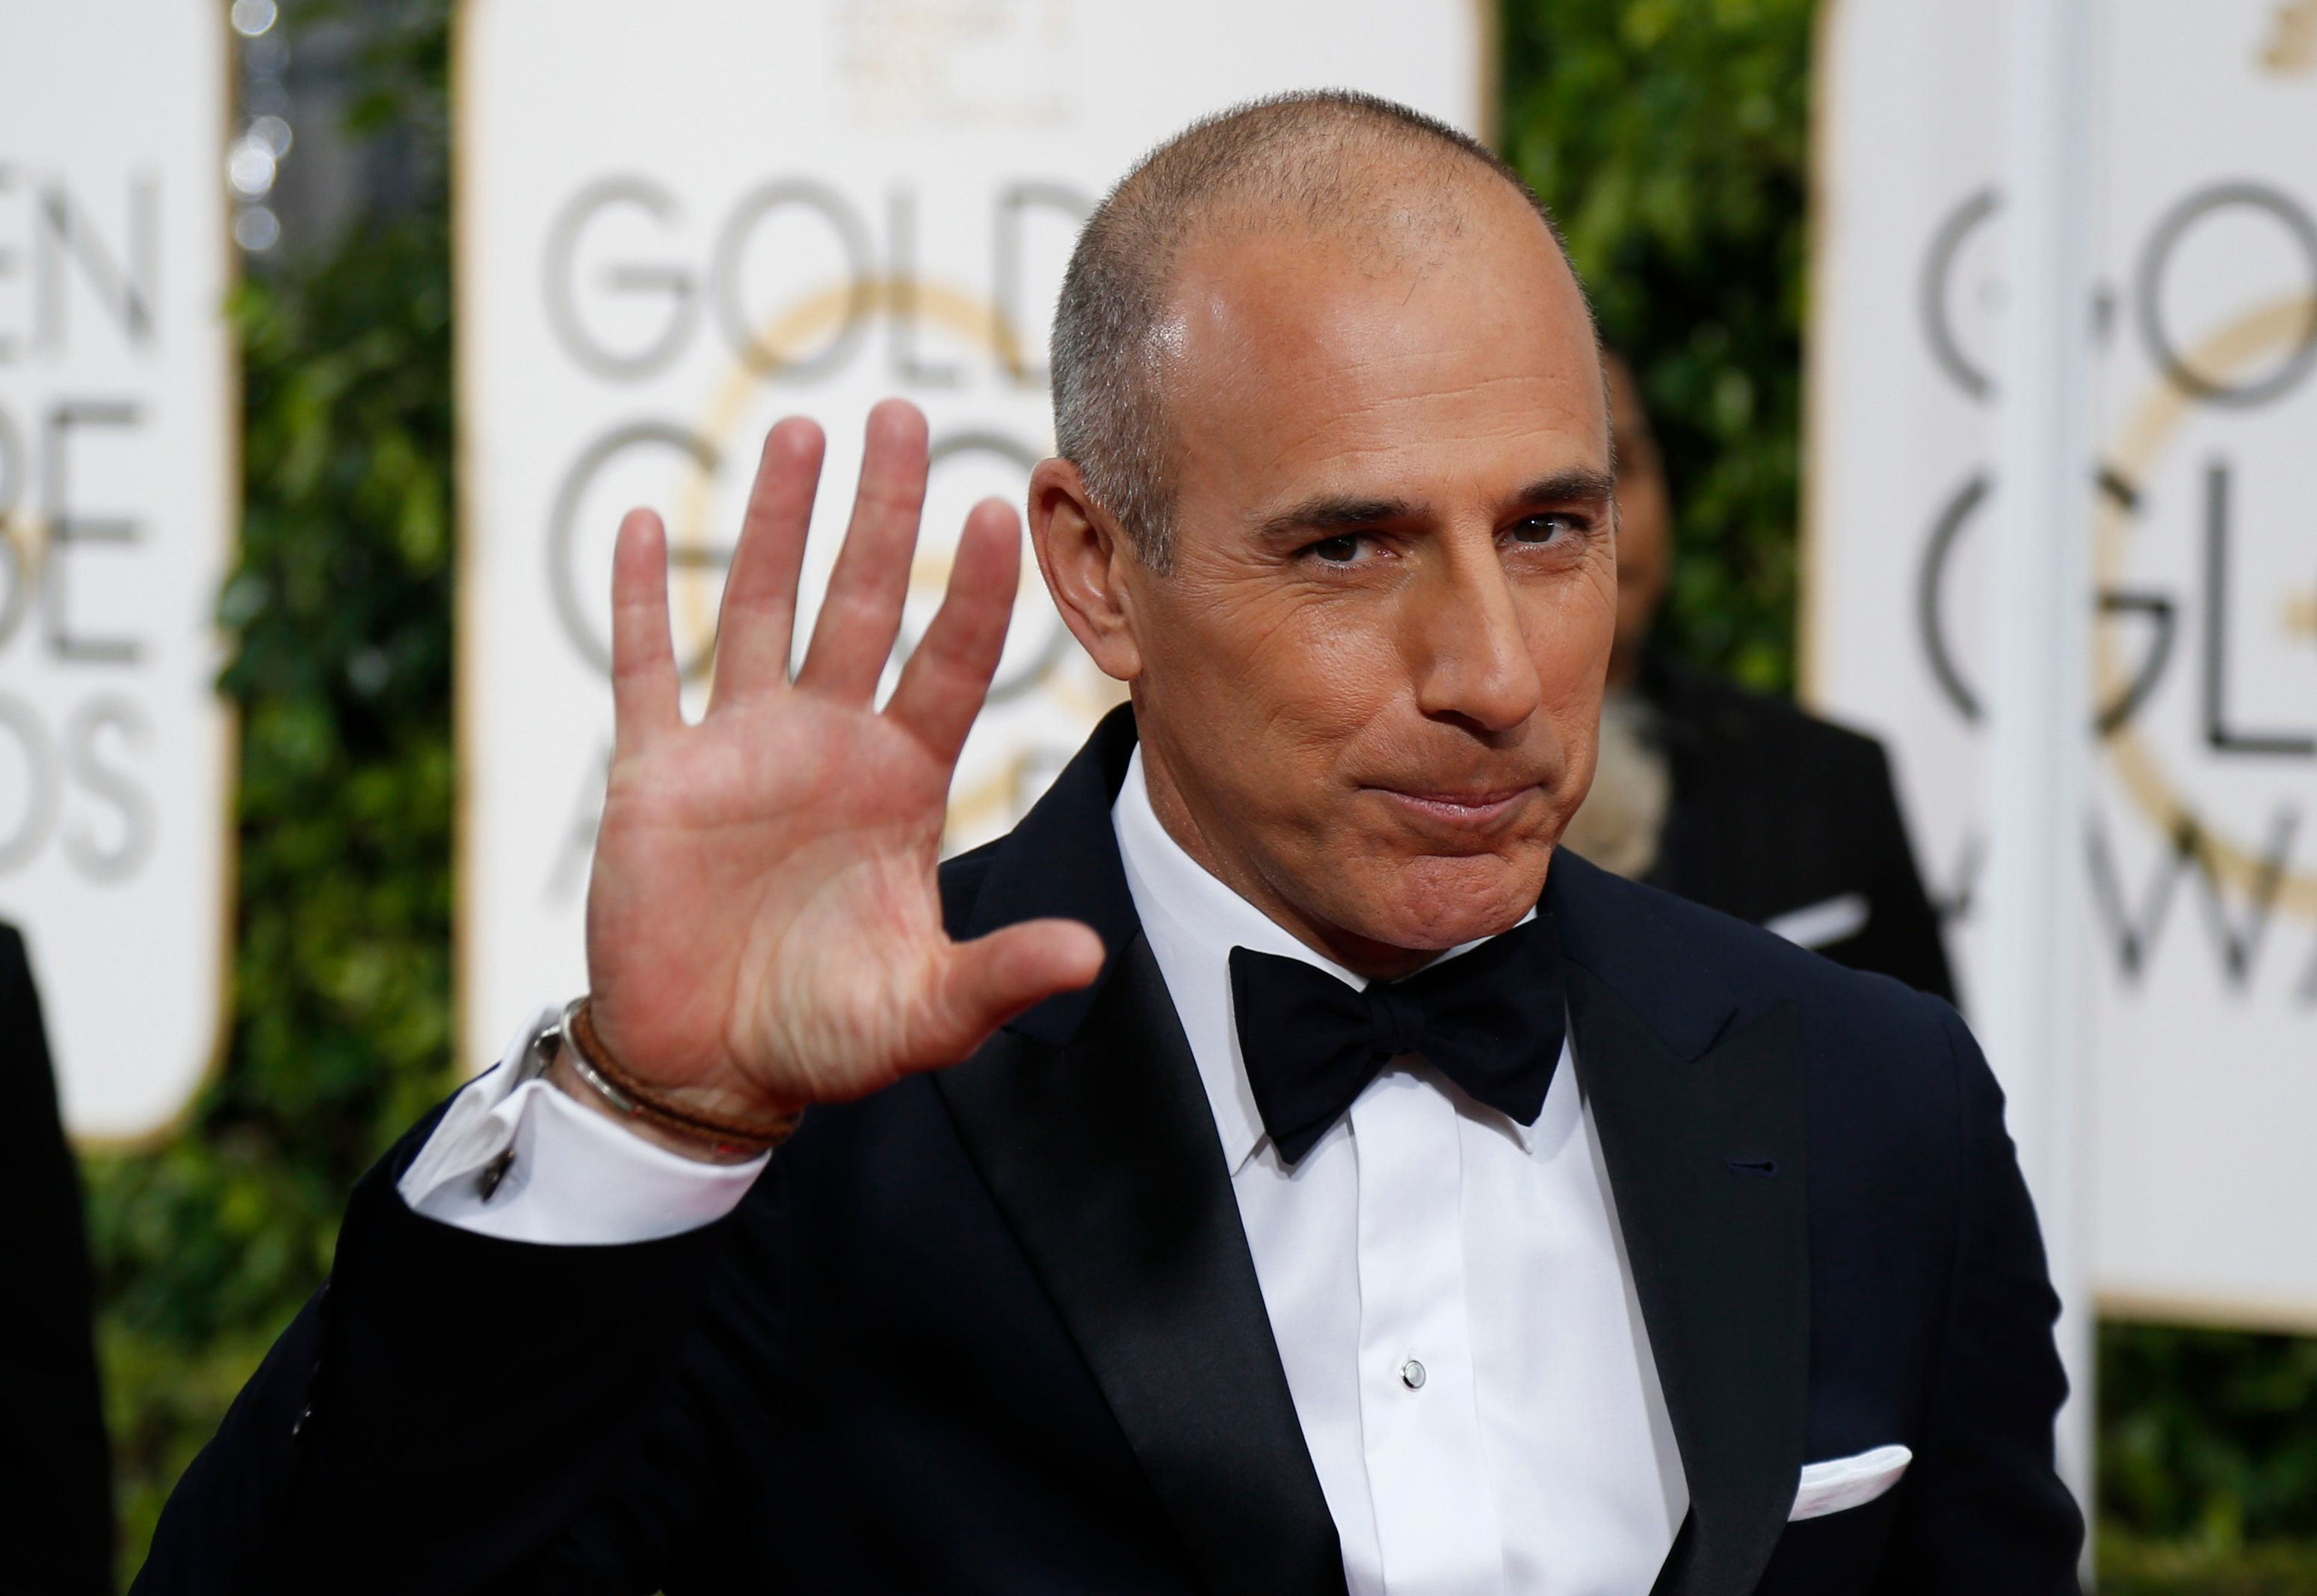 Television personality Matt Lauer arrives at the 72nd Golden Globe Awards in Beverly Hills, California January 11, 2015.   REUTERS/Mario Anzuoni (UNITED STATES  - Tags: ENTERTAINMENT)  (GOLDENGLOBES-ARRIVALS)